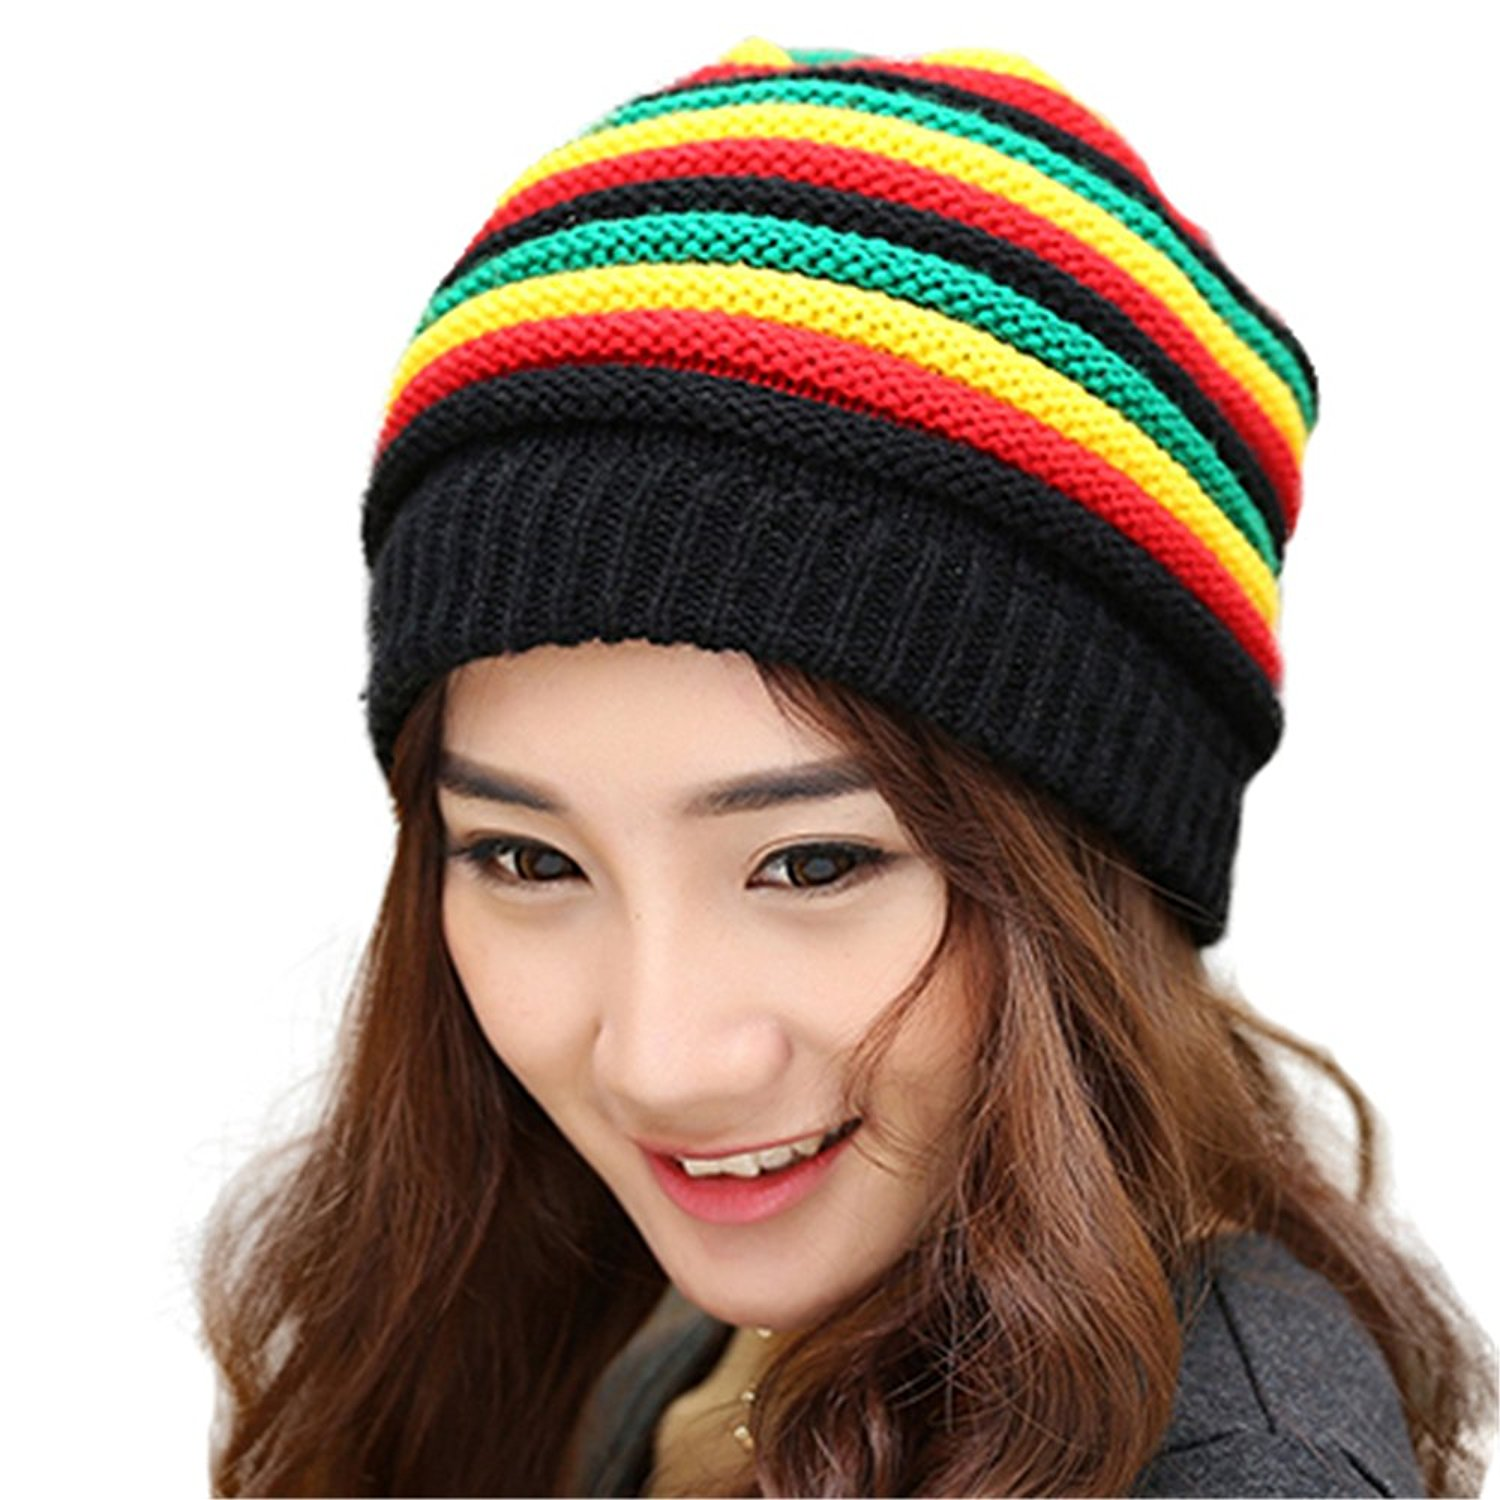 ba9075ea3971 Get Quotations · Beanie Mens Womens Rasta Reggae Cap Hiphop Rap Winter  Oversized Knitted Hat